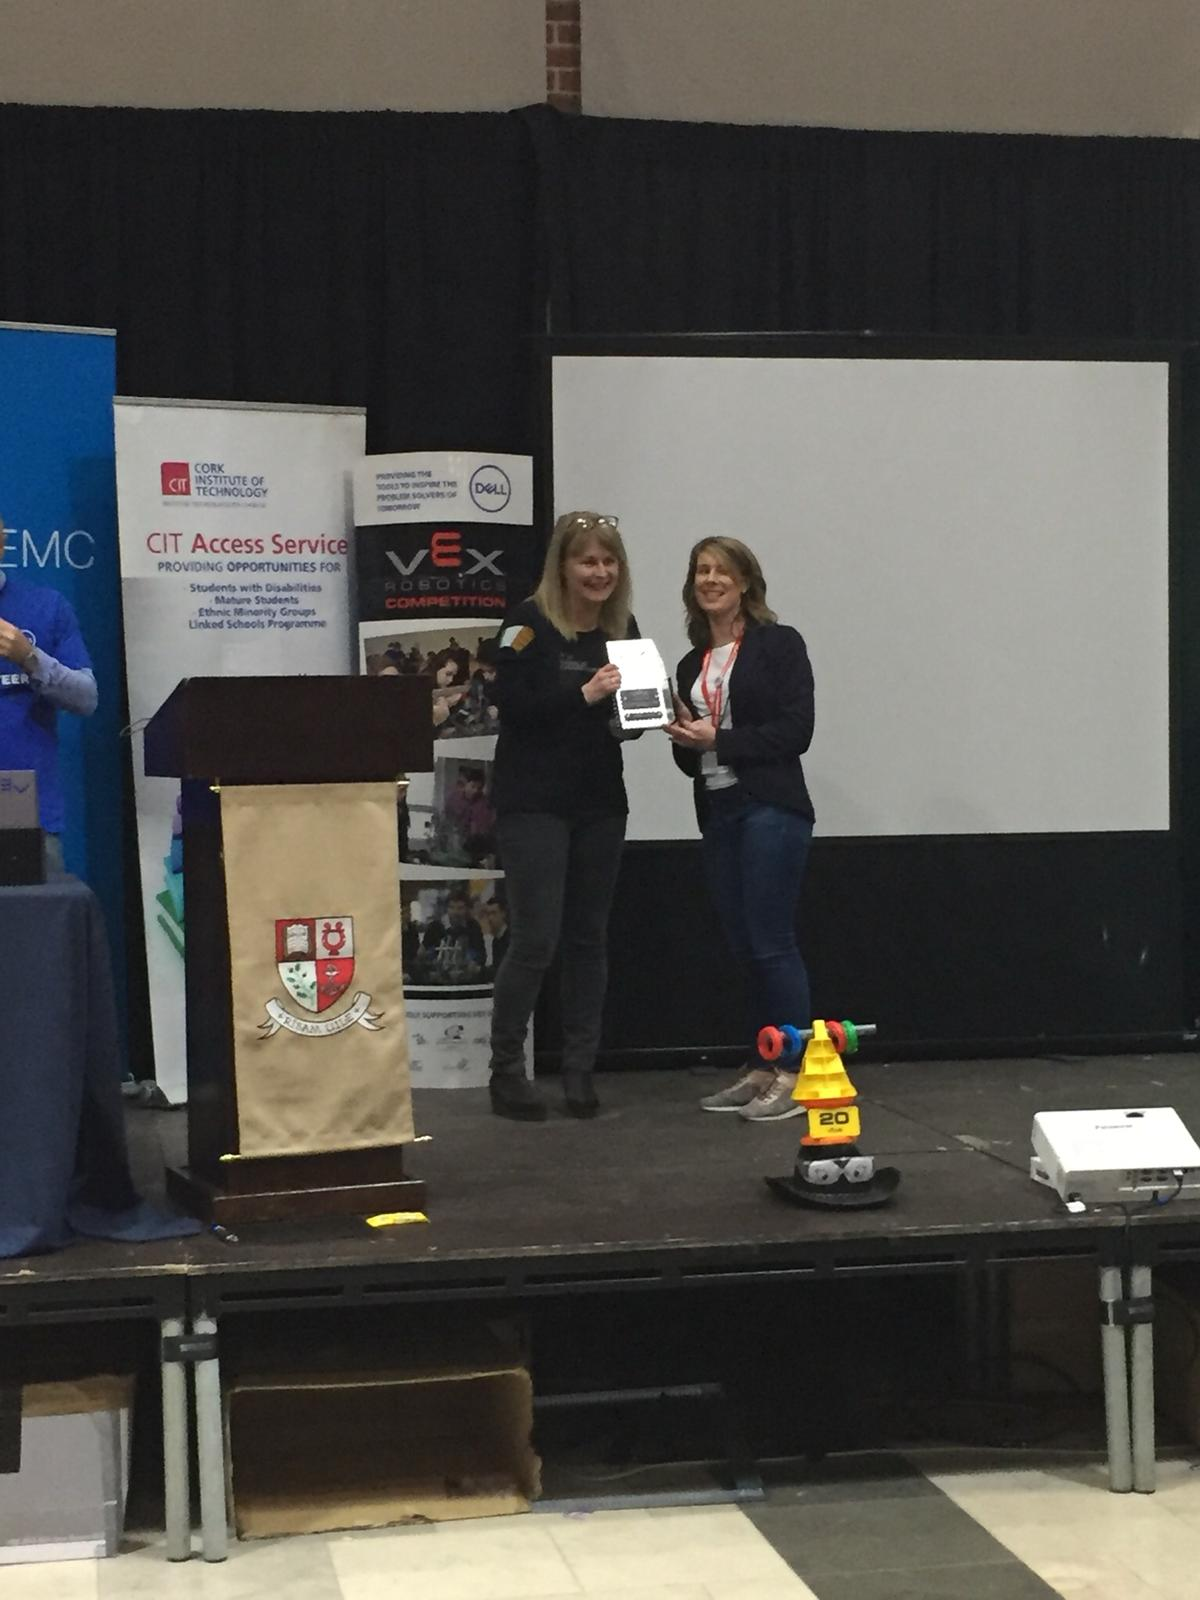 Niamh  Hay KCS being presented with the Volunteer Award by Sharon Lawton CIT.jpg